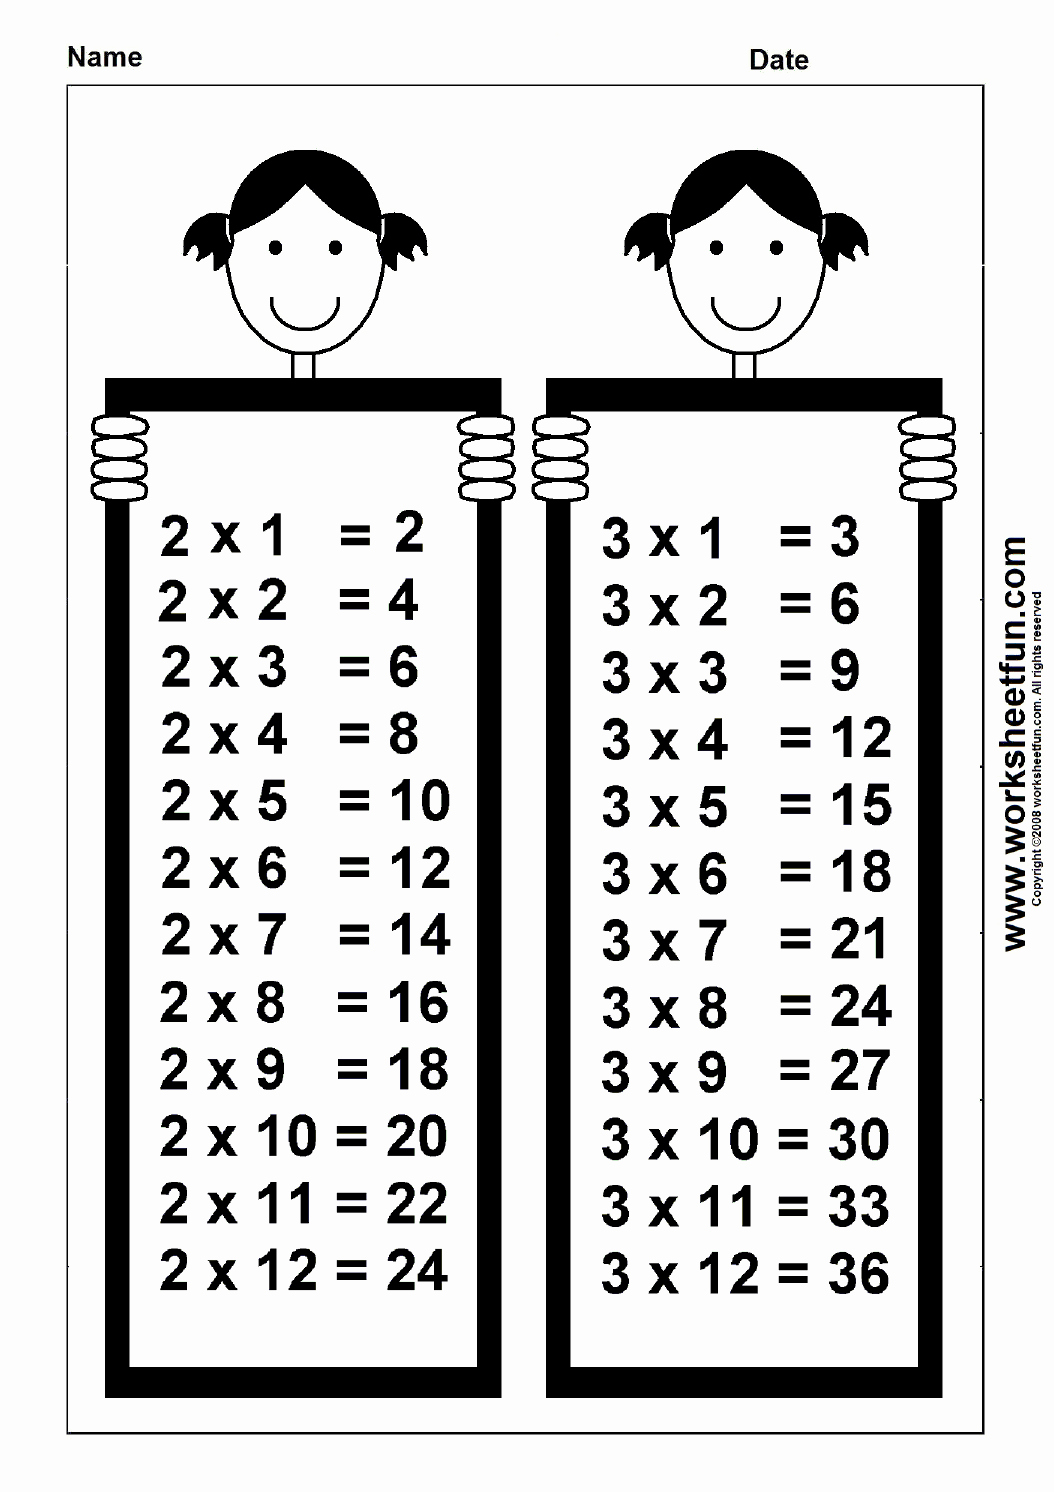 2 Times Table Worksheet Fresh Times Table Chart – 2 & 3 Free Printable Worksheets